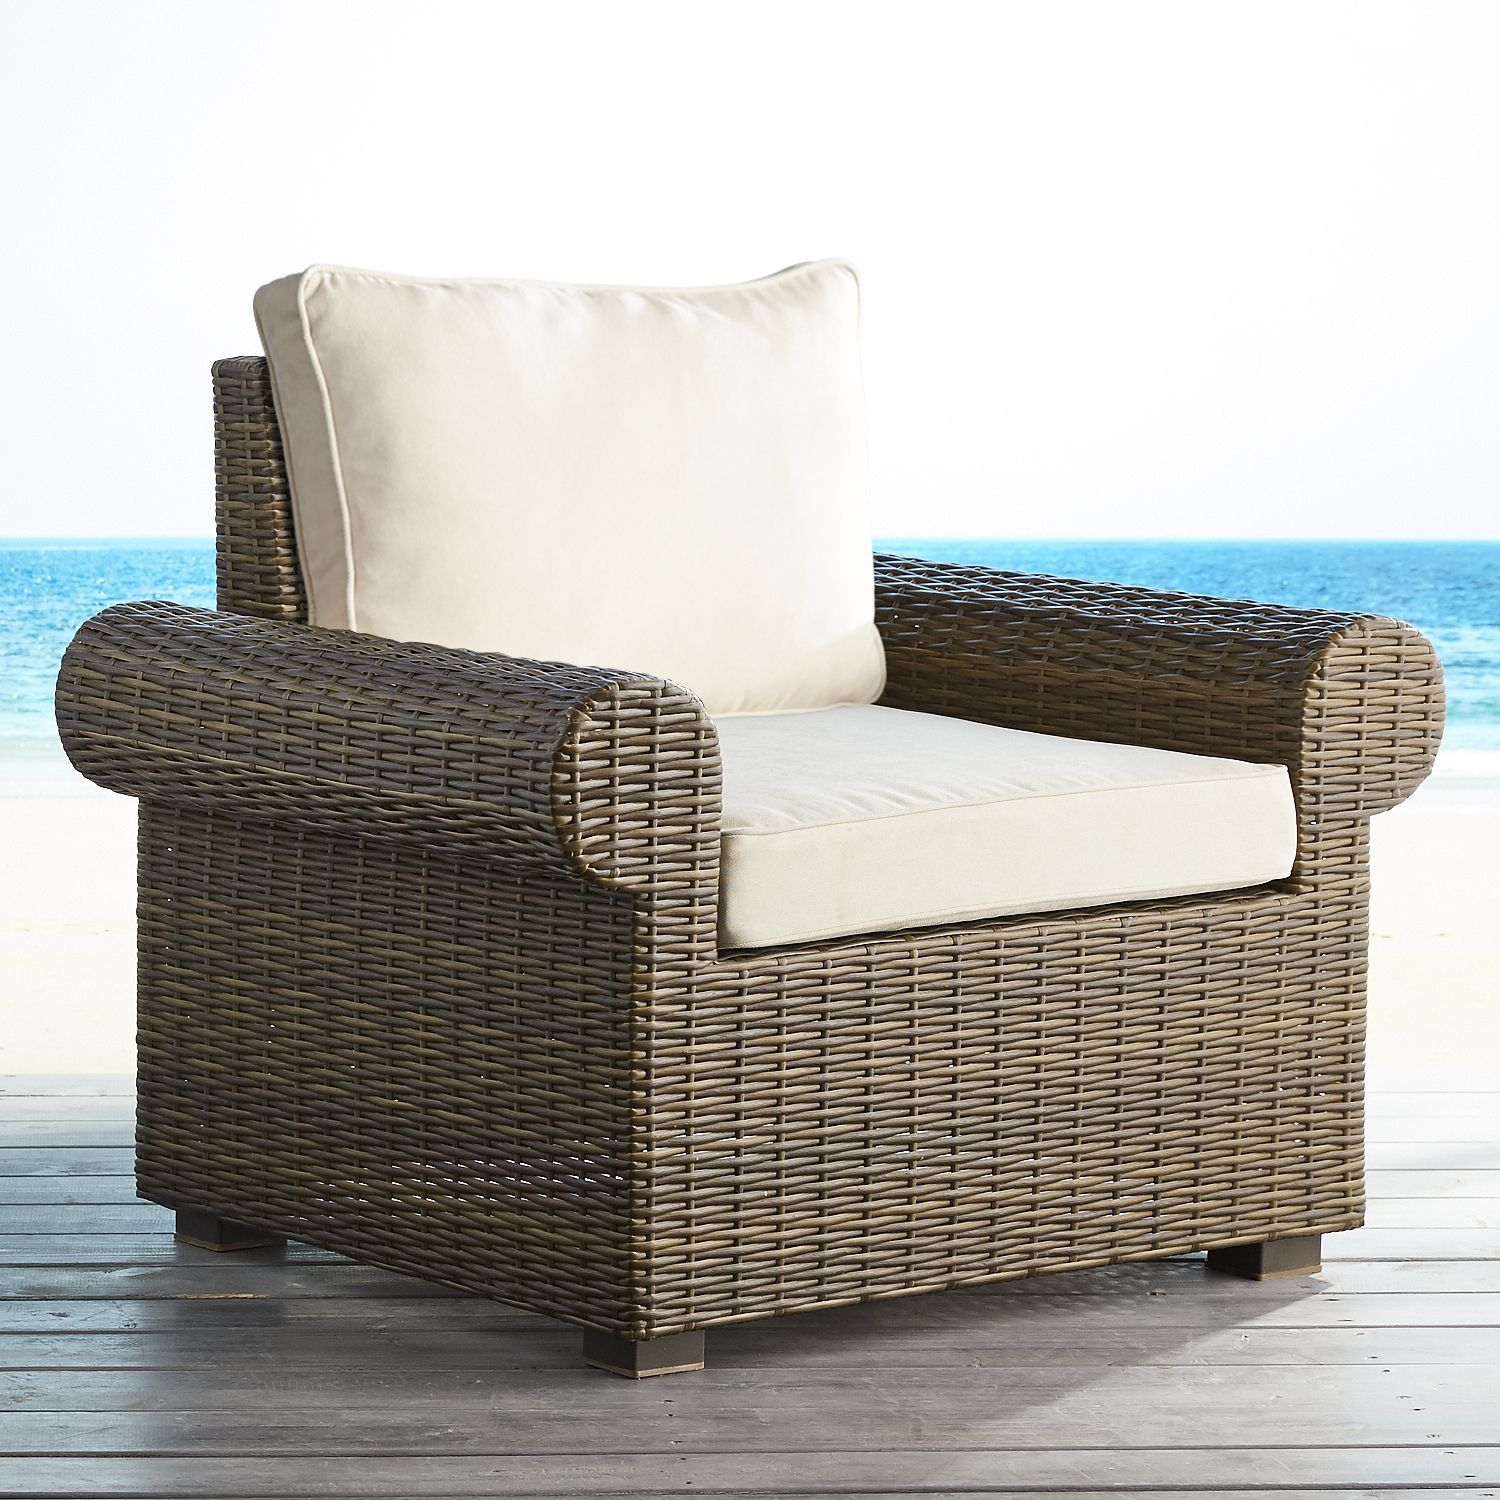 Echo beach latte roll armchair brown 3 piece patio set outdoor chairs outdoor furniture